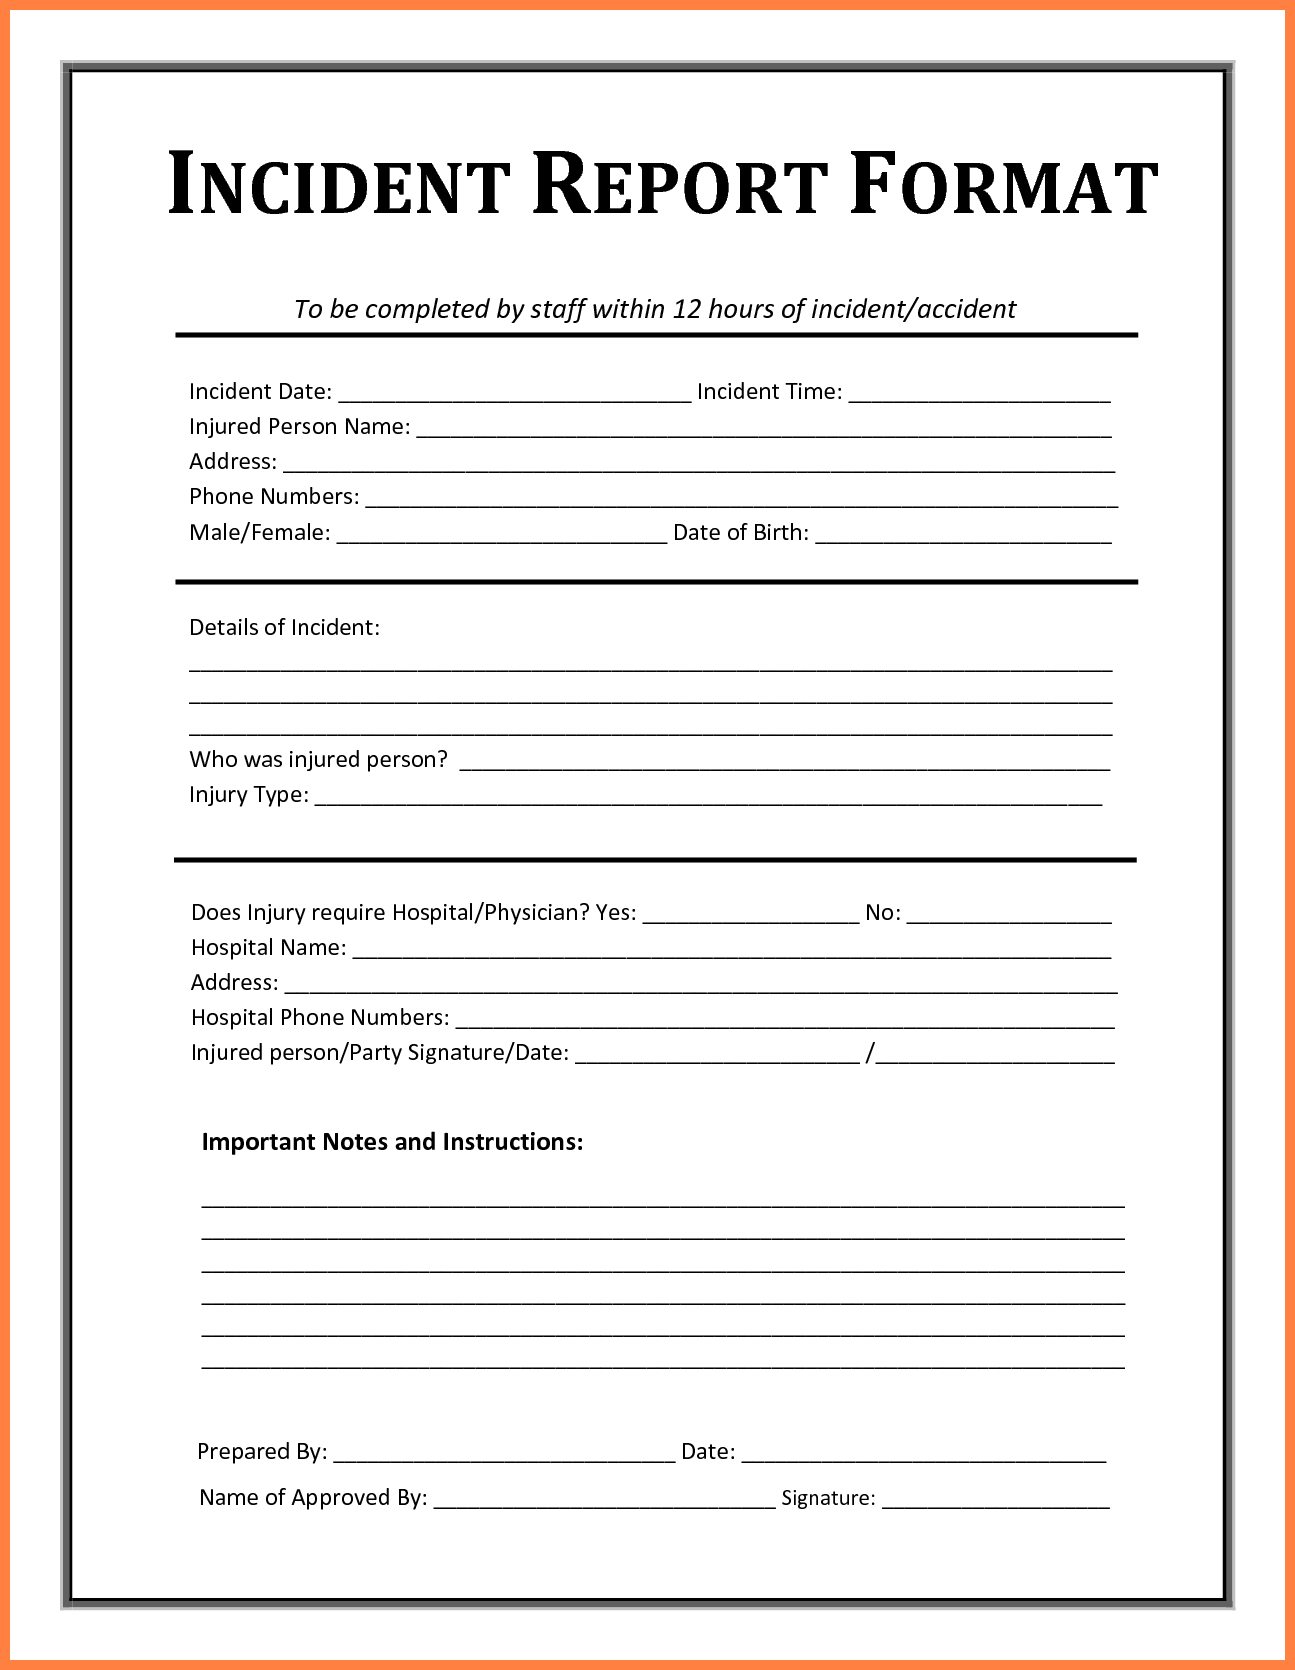 Incident Report Template - Free Incident Report Templates Throughout Office Incident Report Template